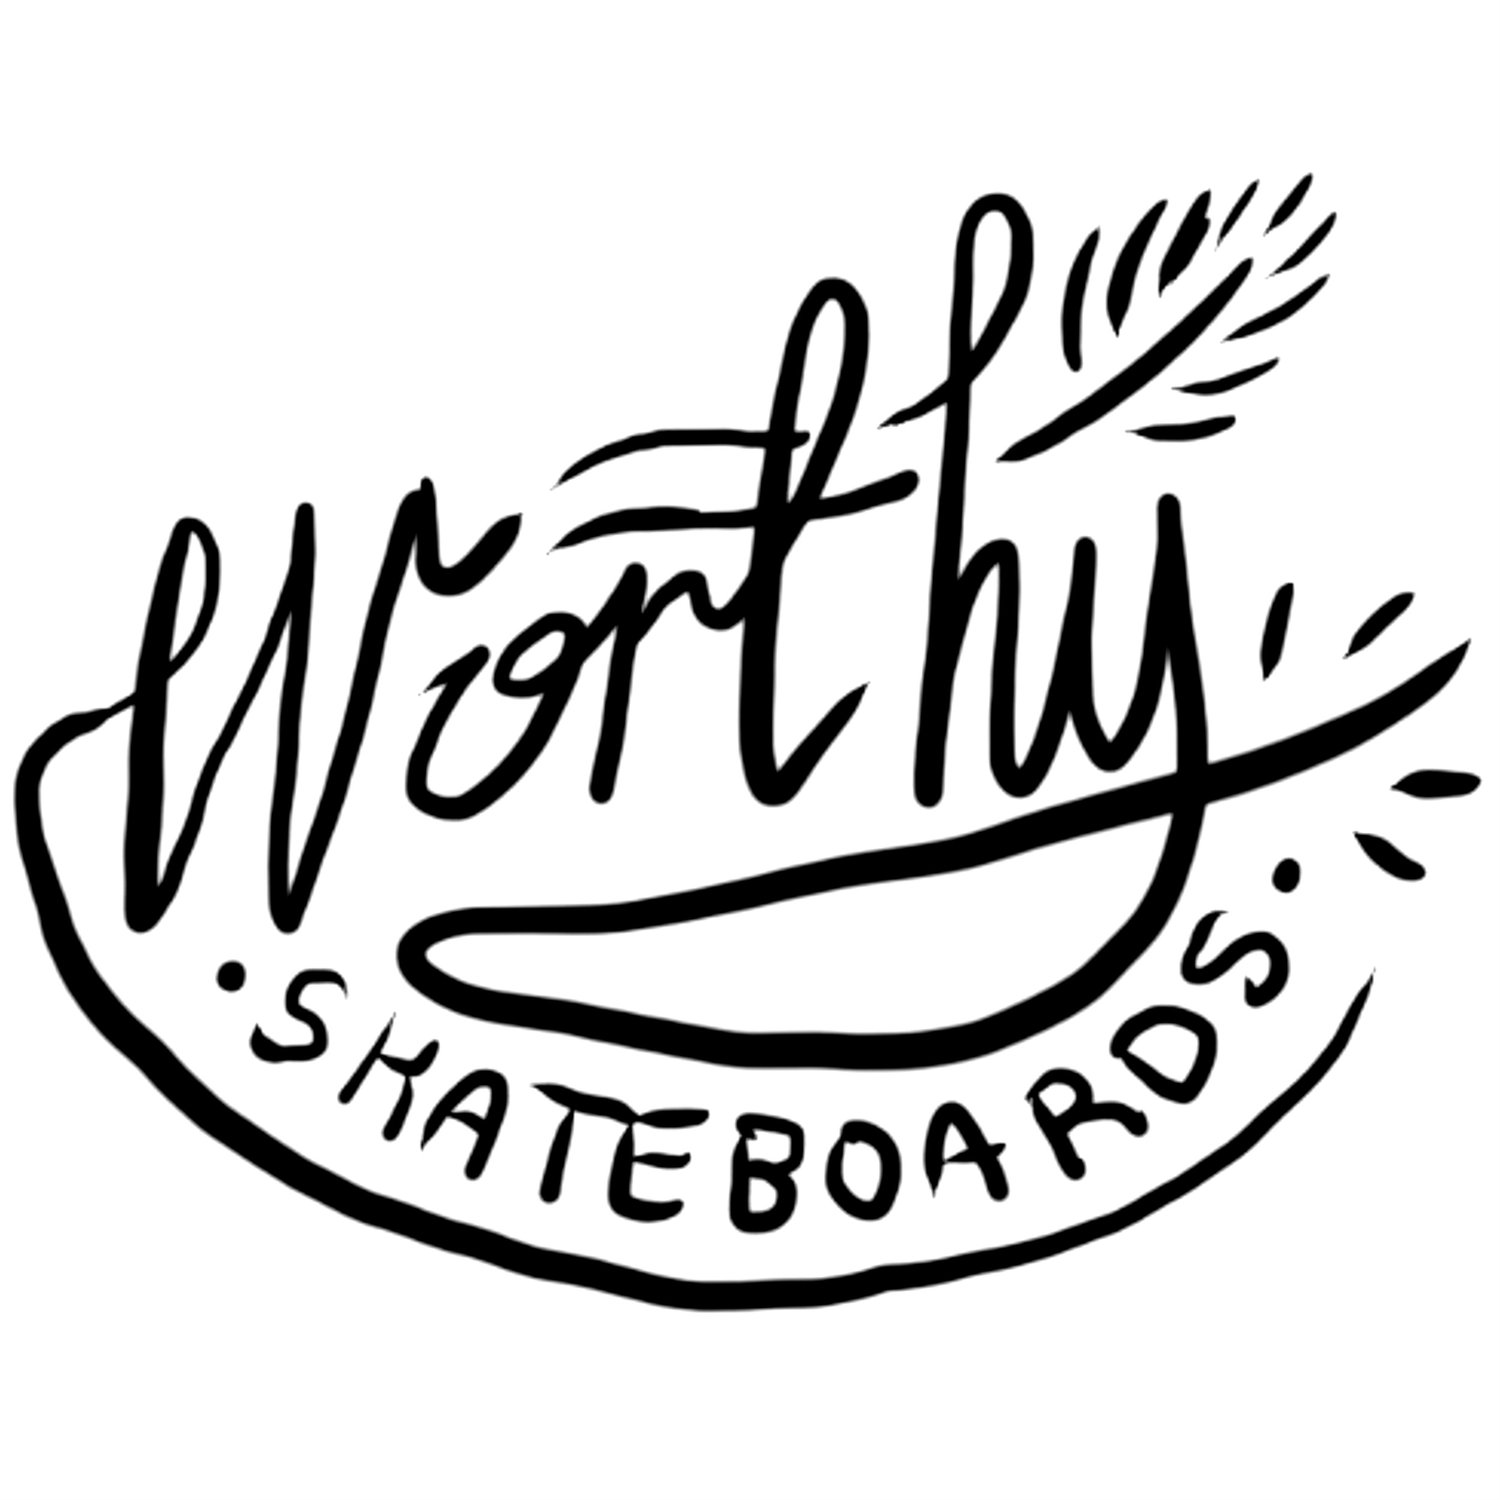 Worthy Skateboards